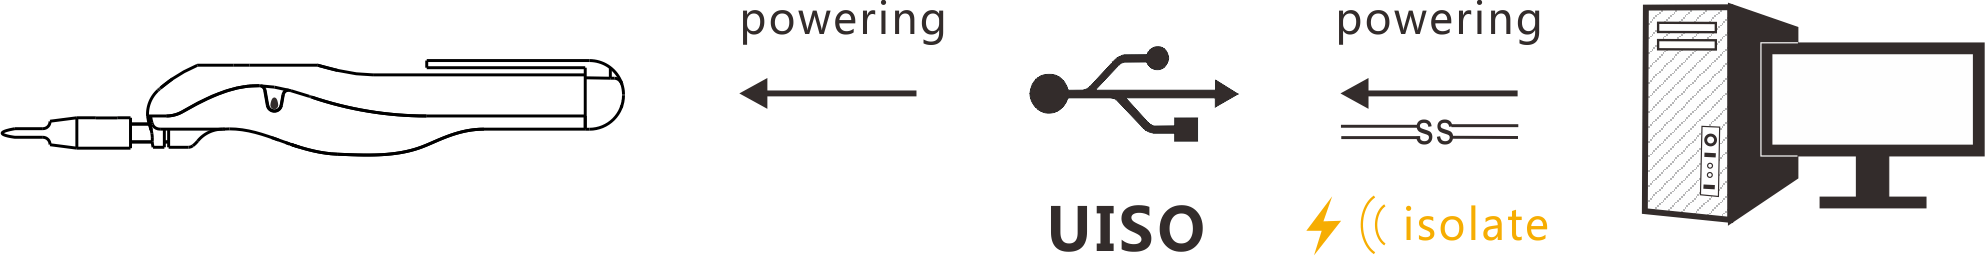 UISO Function